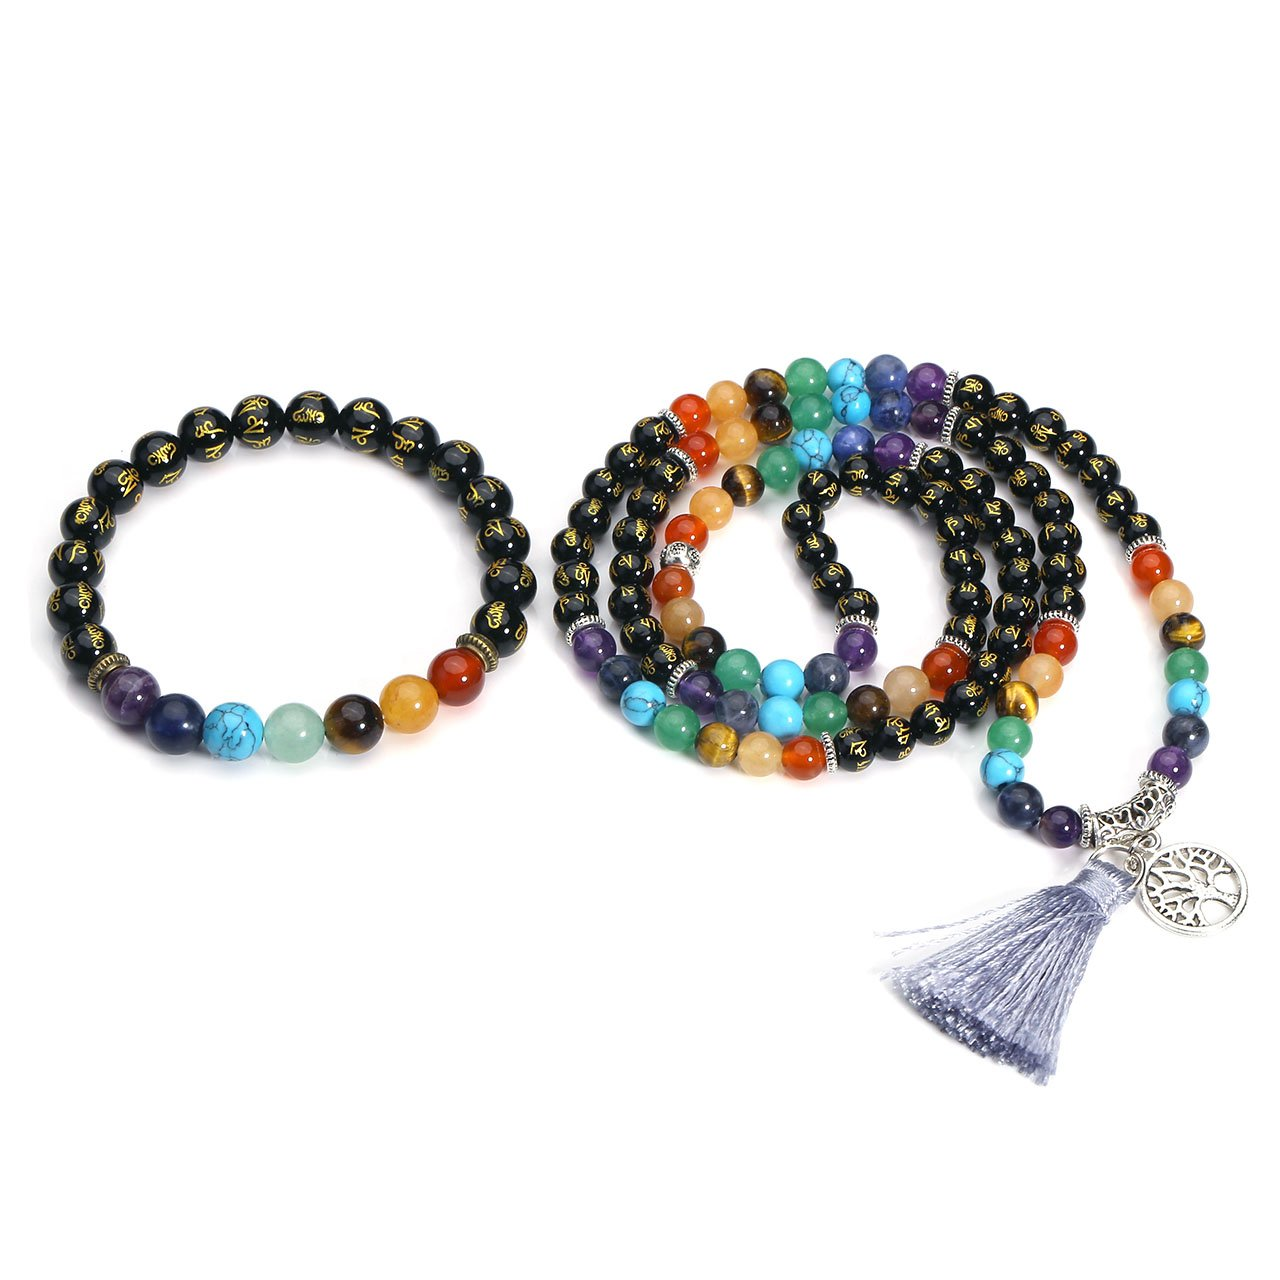 Jovivi 6mm Natural Black Agate Gemstones Om Mani Padme Hum Buddhist Prayer 108 Beads Tibetan Mala Necklace w/Tree of Life Charm + 7 Chakra Healing Crystal Bracelet